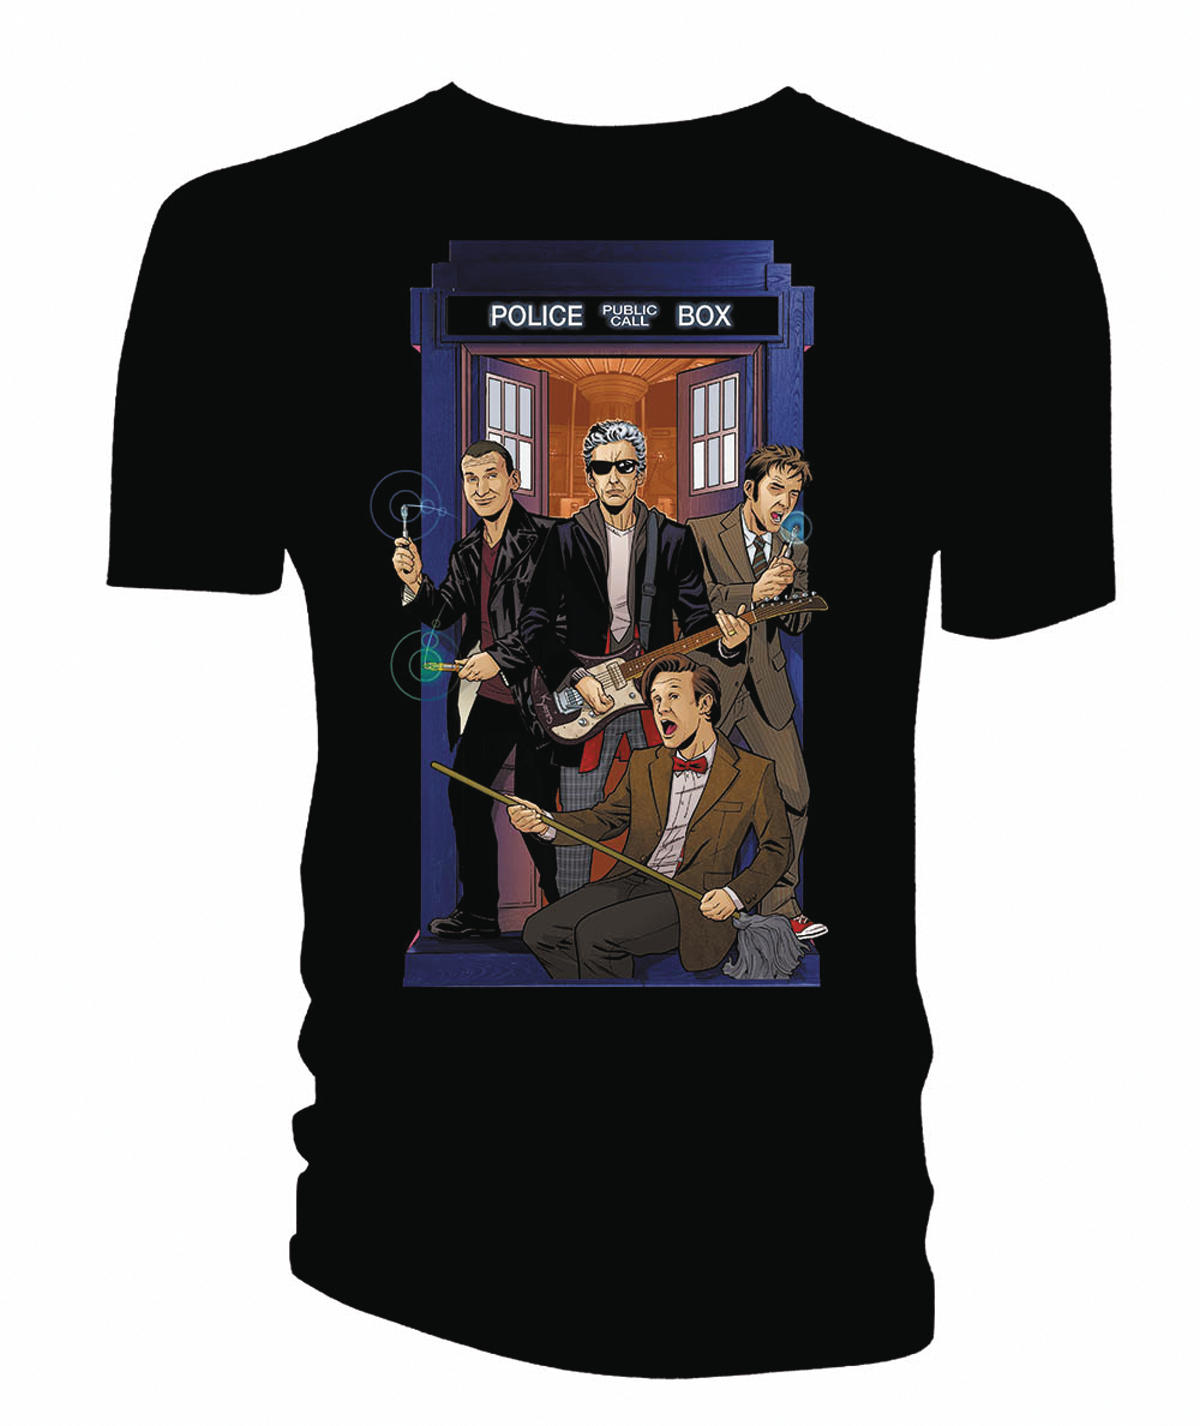 DOCTOR WHO 4 DOCTORS BAND PX BLACK T/S SM